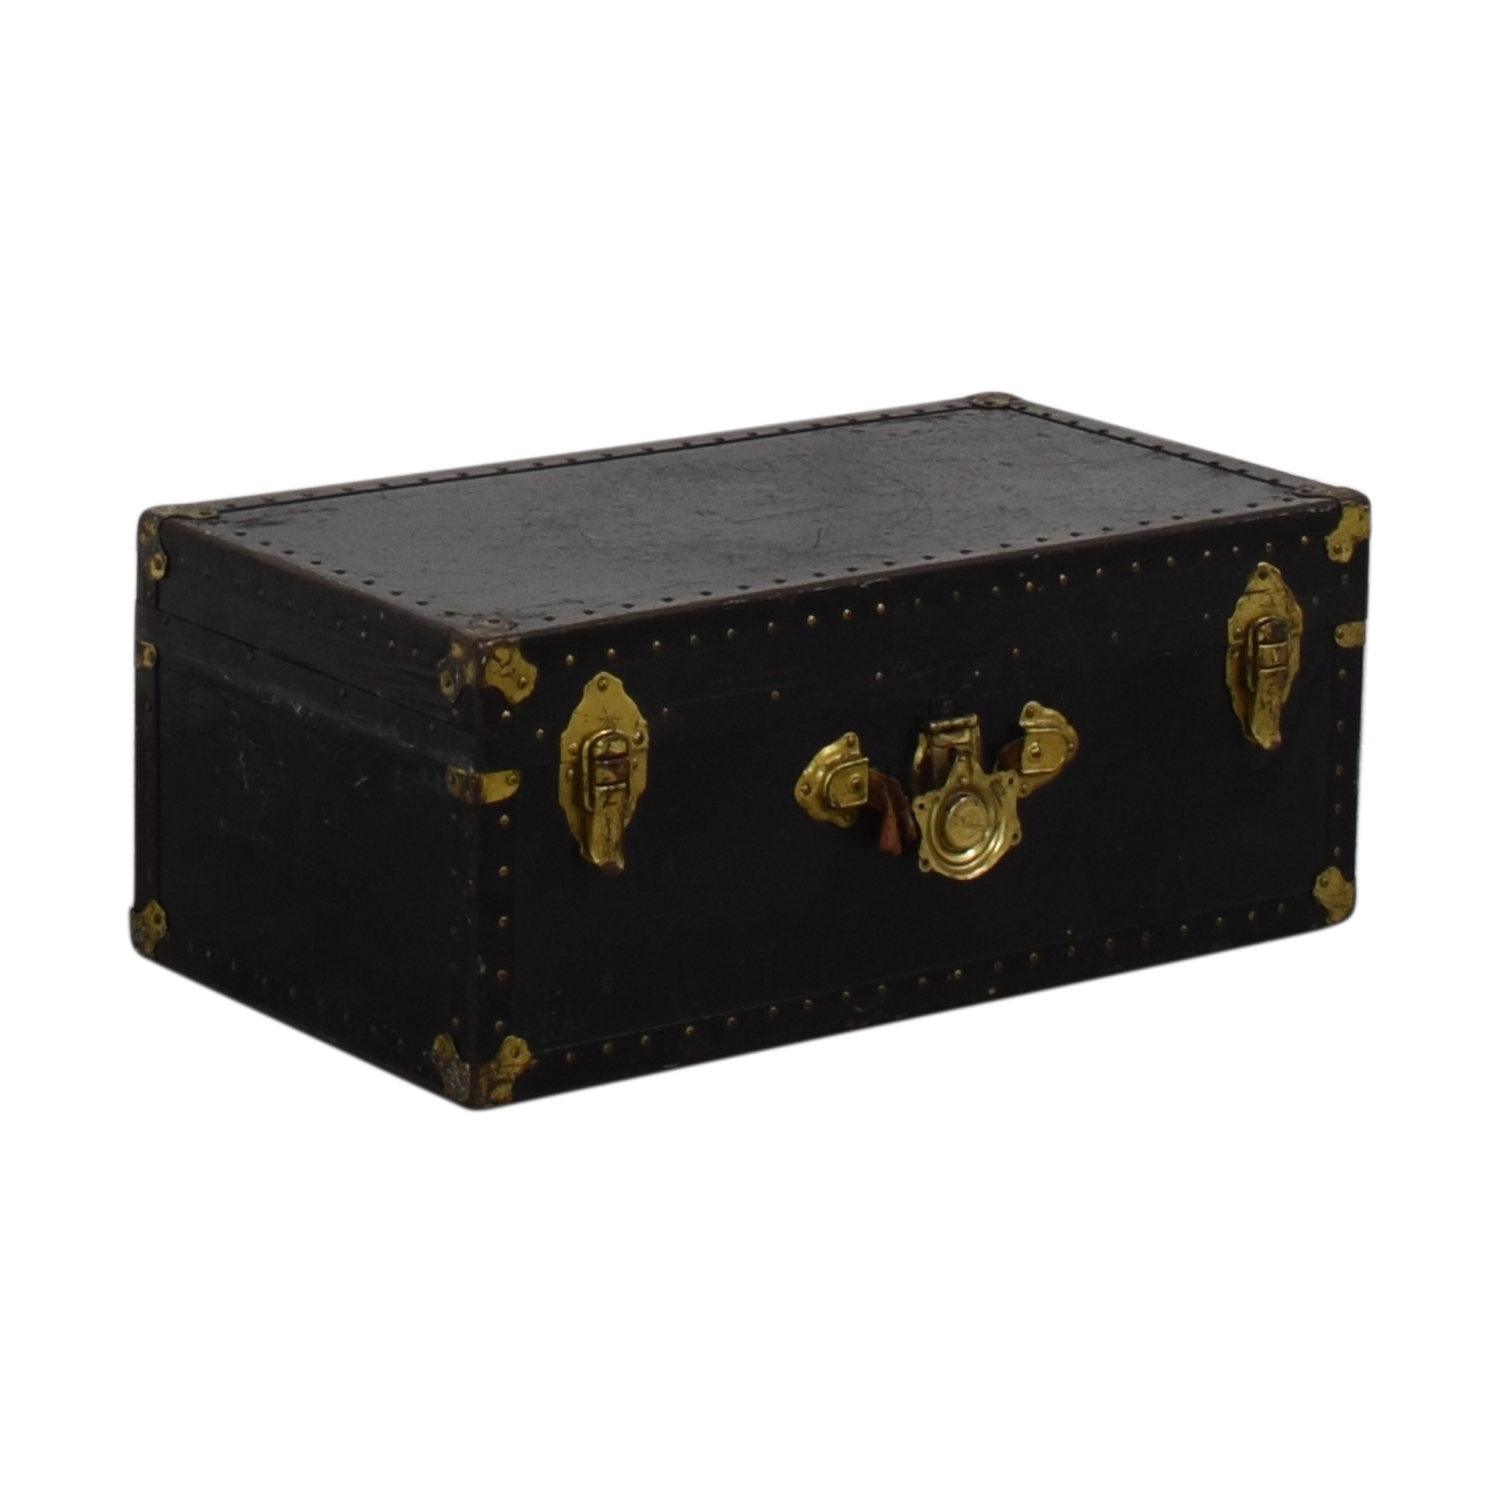 Vintage Wide Trunk second hand